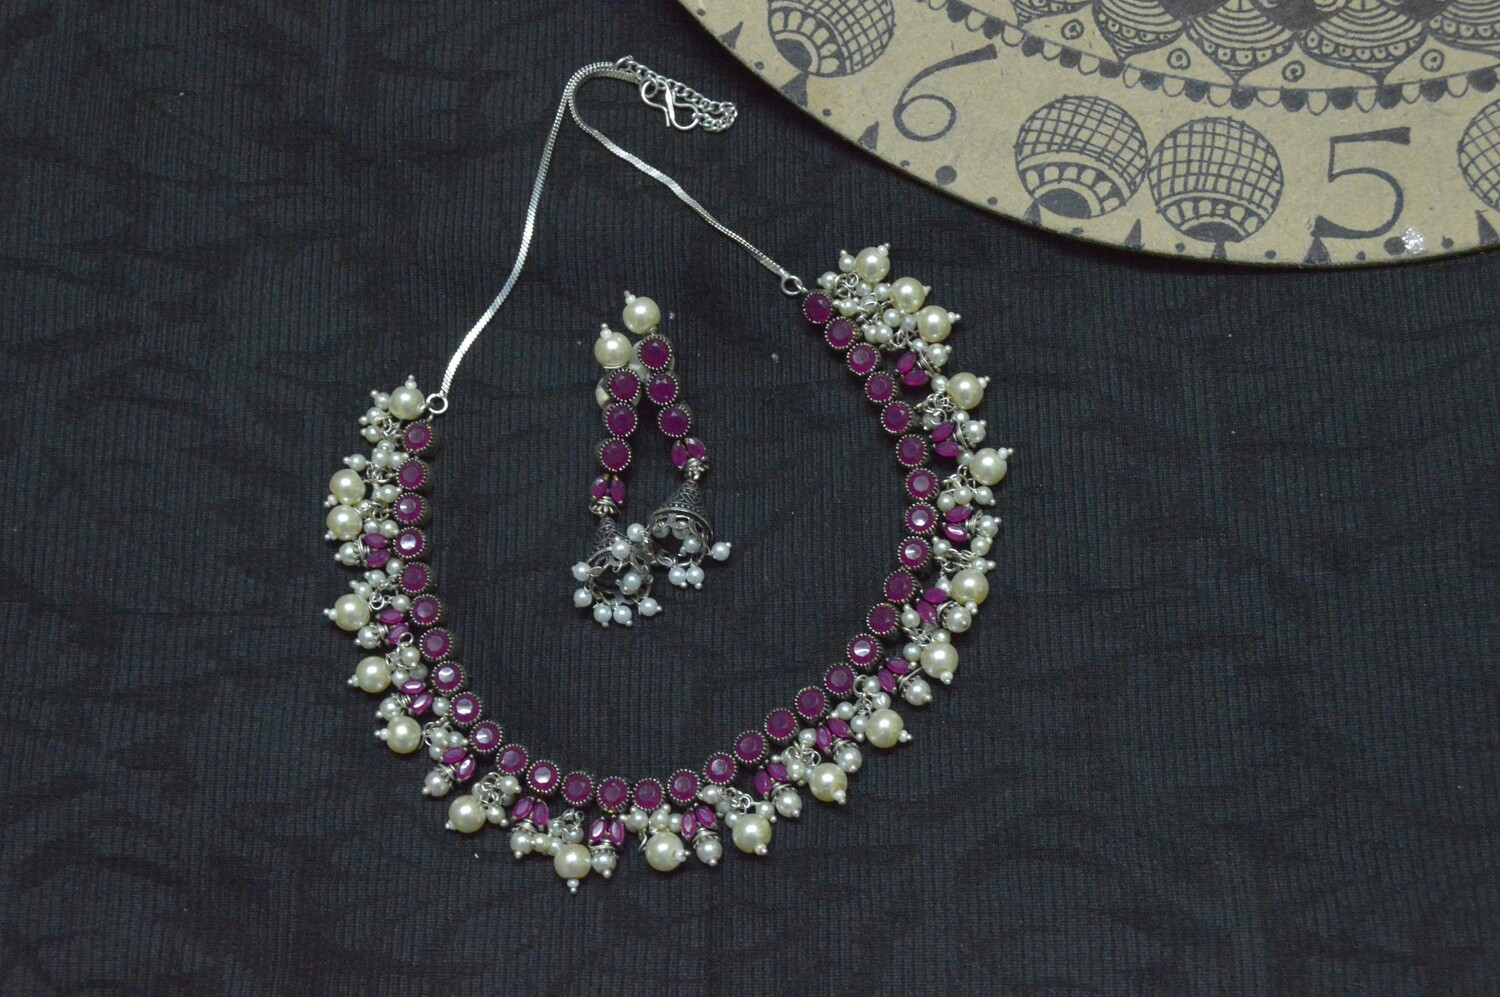 RUBY COLOR STONES NECKLACE WITH PEARL BEADS AT BOTTOM